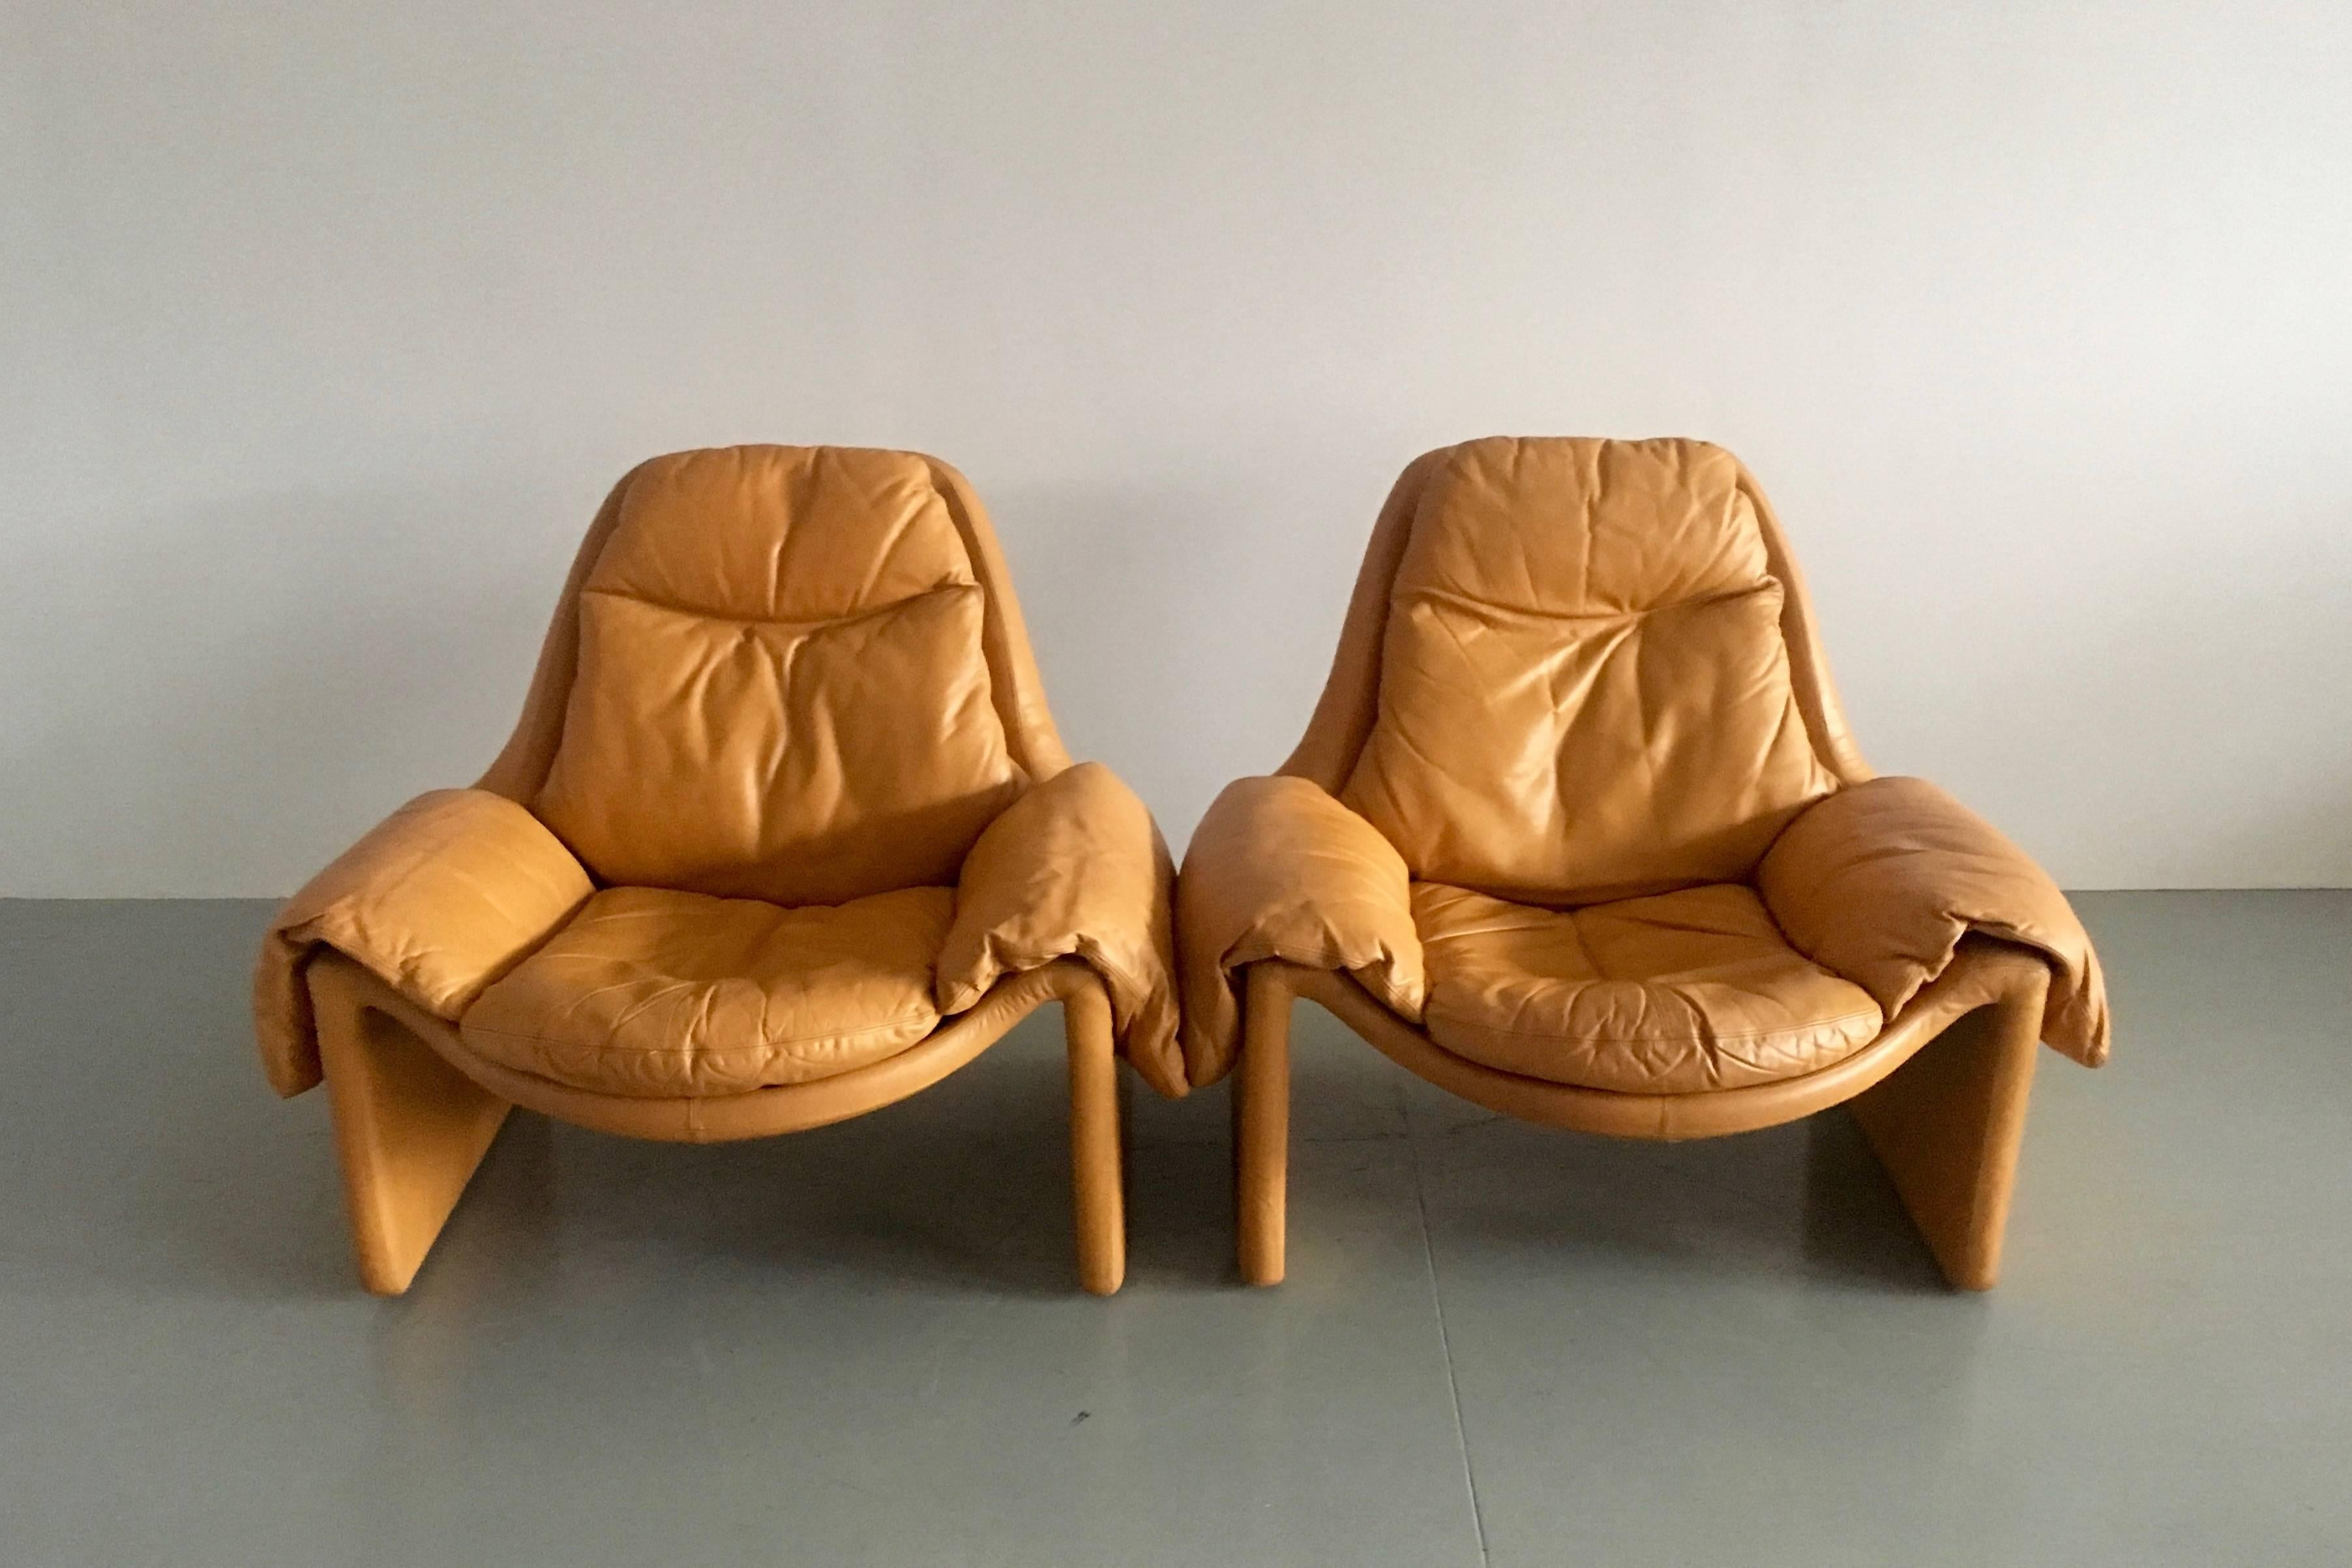 Proposals 2 Lounge Chairs With Ottoman By Vittorio